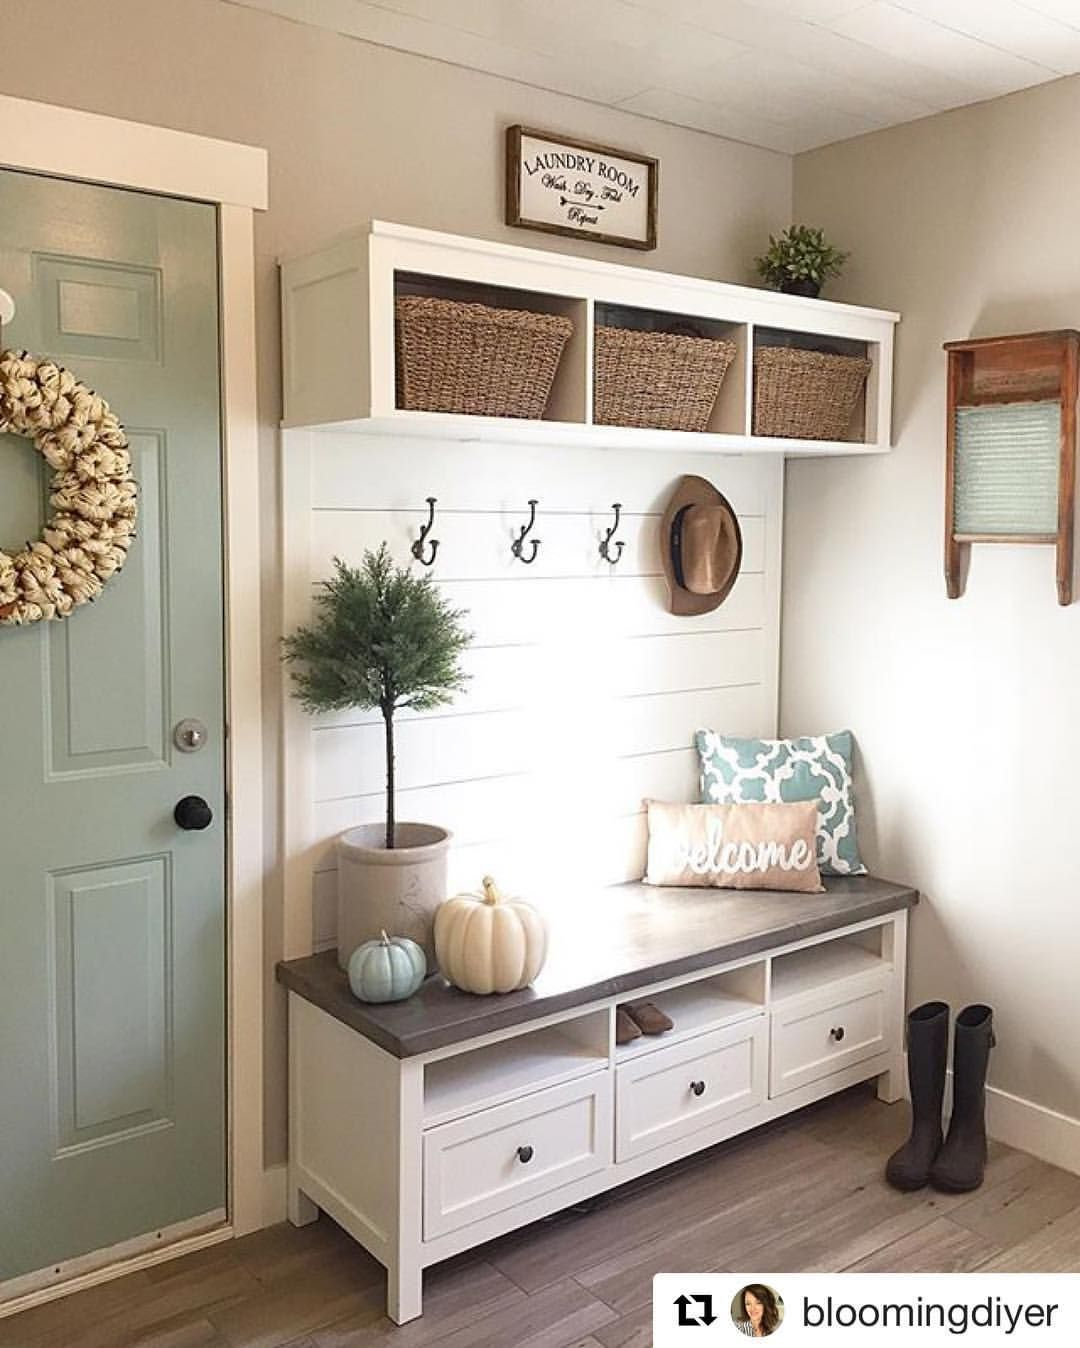 Pin by Jule Bär on Wohnideen | Pinterest | Mudroom, Laundry and ...